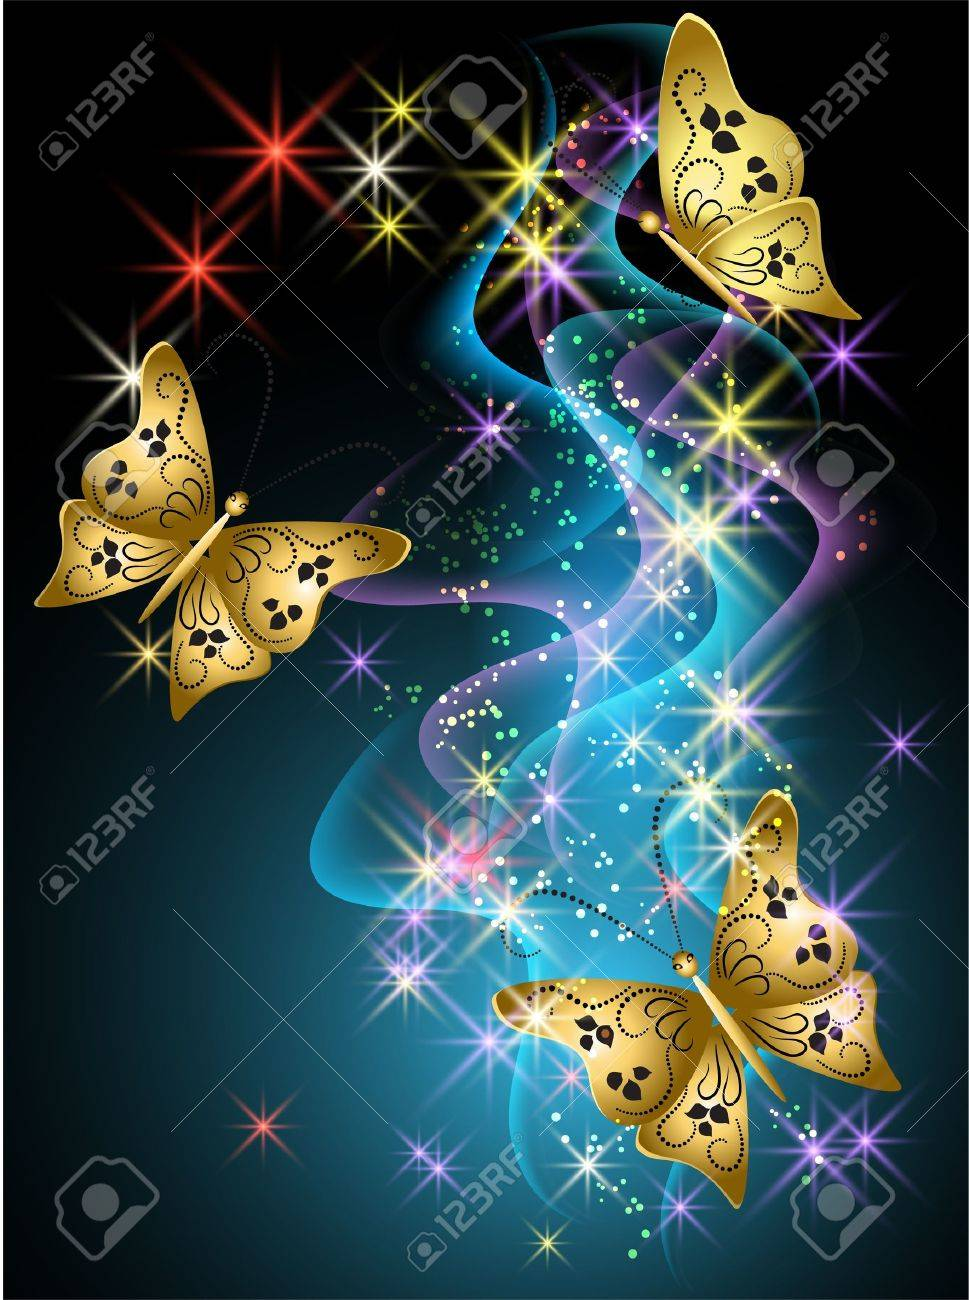 glowing background with smoke stars and butterfly royalty free